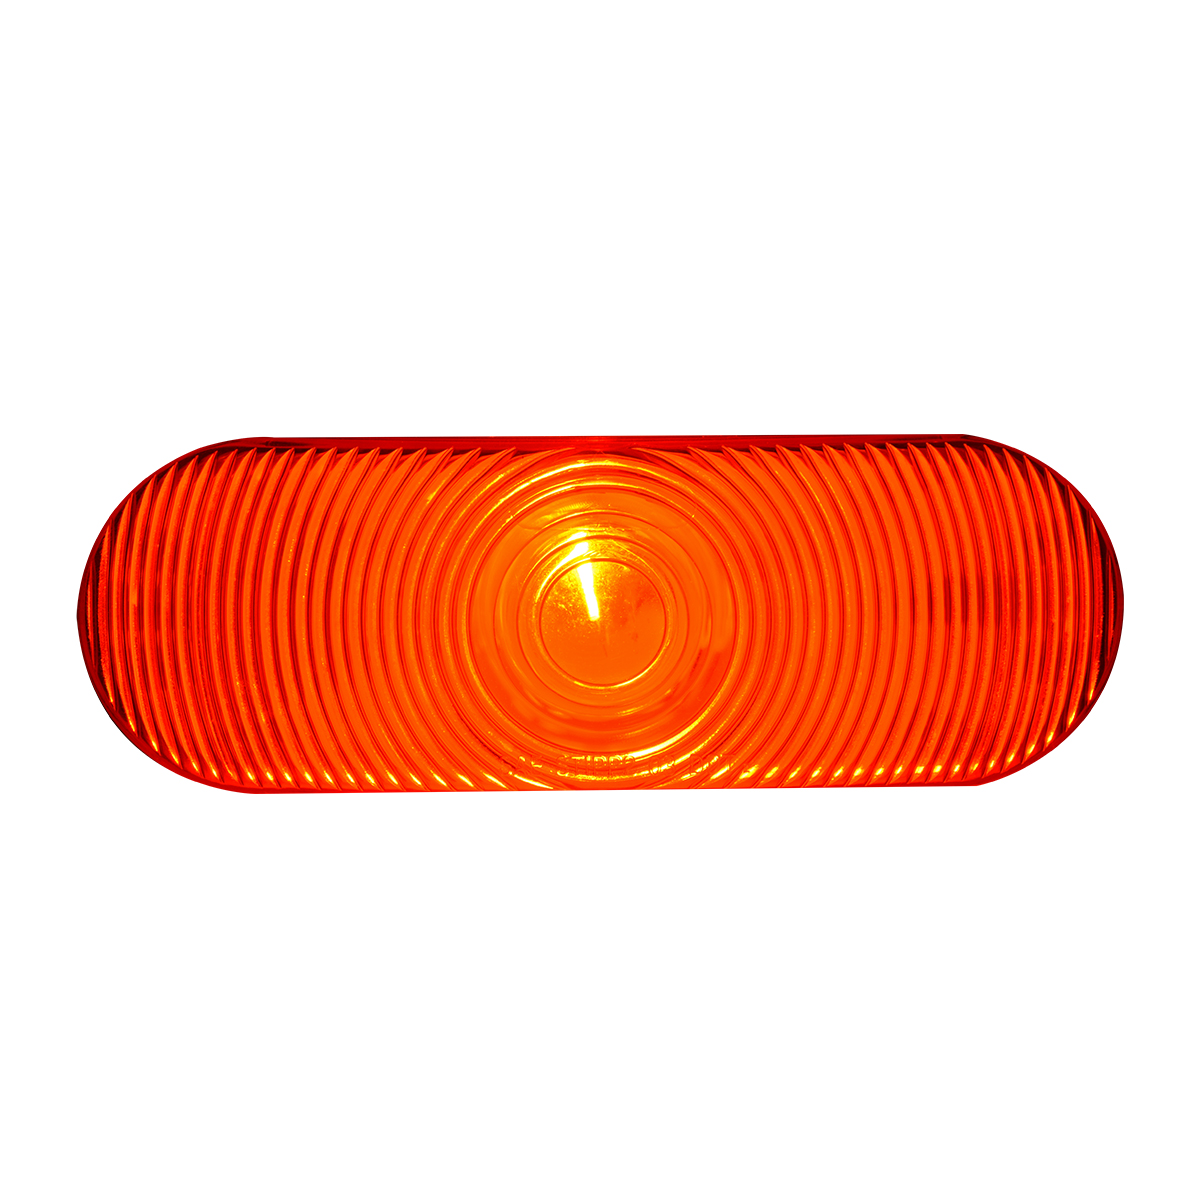 #80805 Oval Sealed Incandescent Flat Red/Red Lights